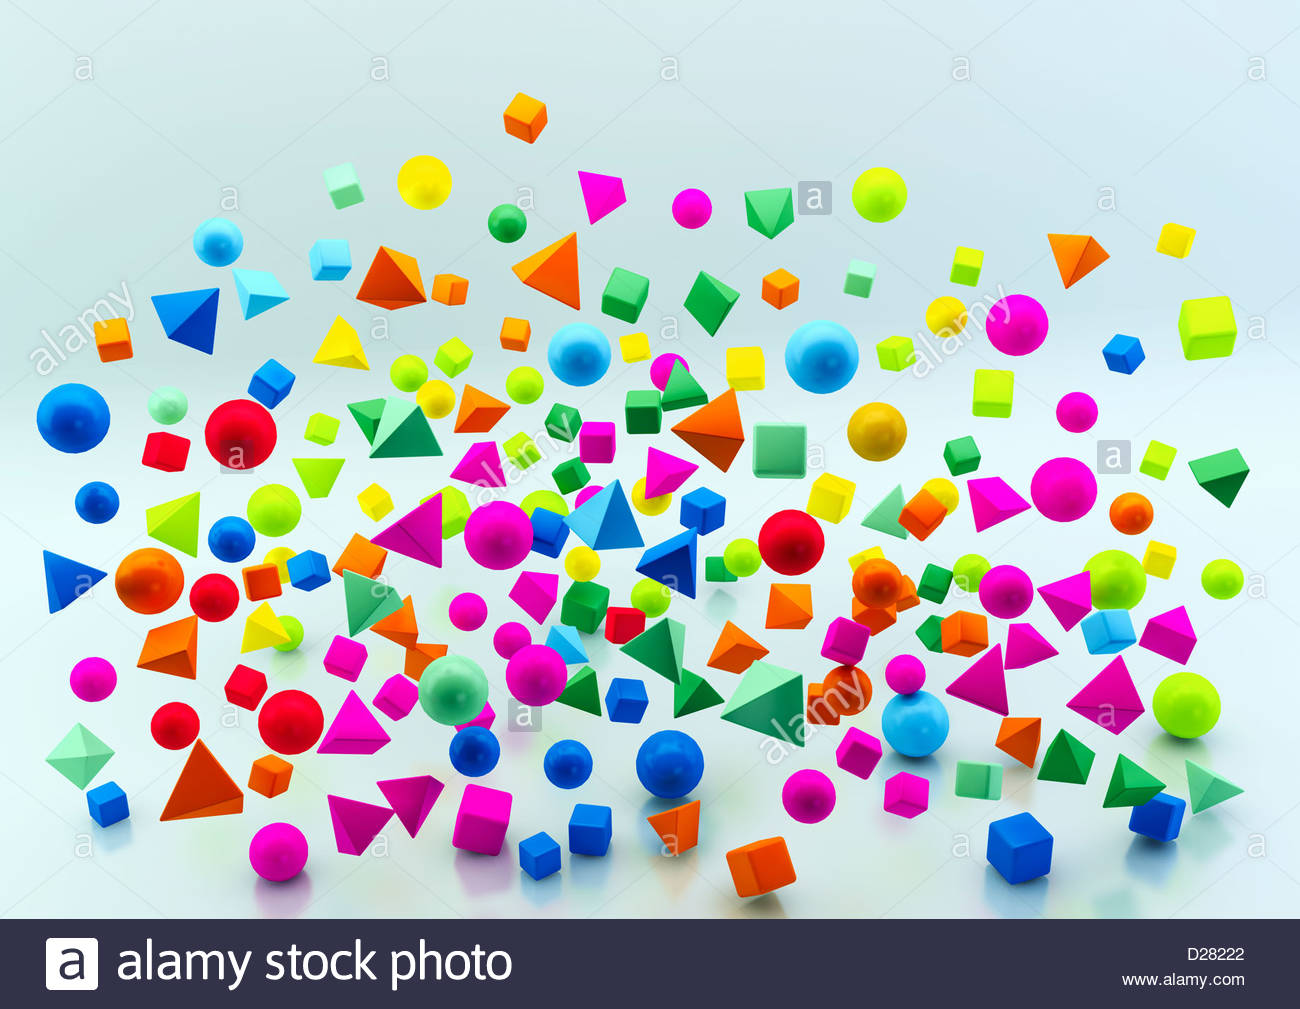 Abstract floating multicolored geometric shapes on blue background - Stock Image